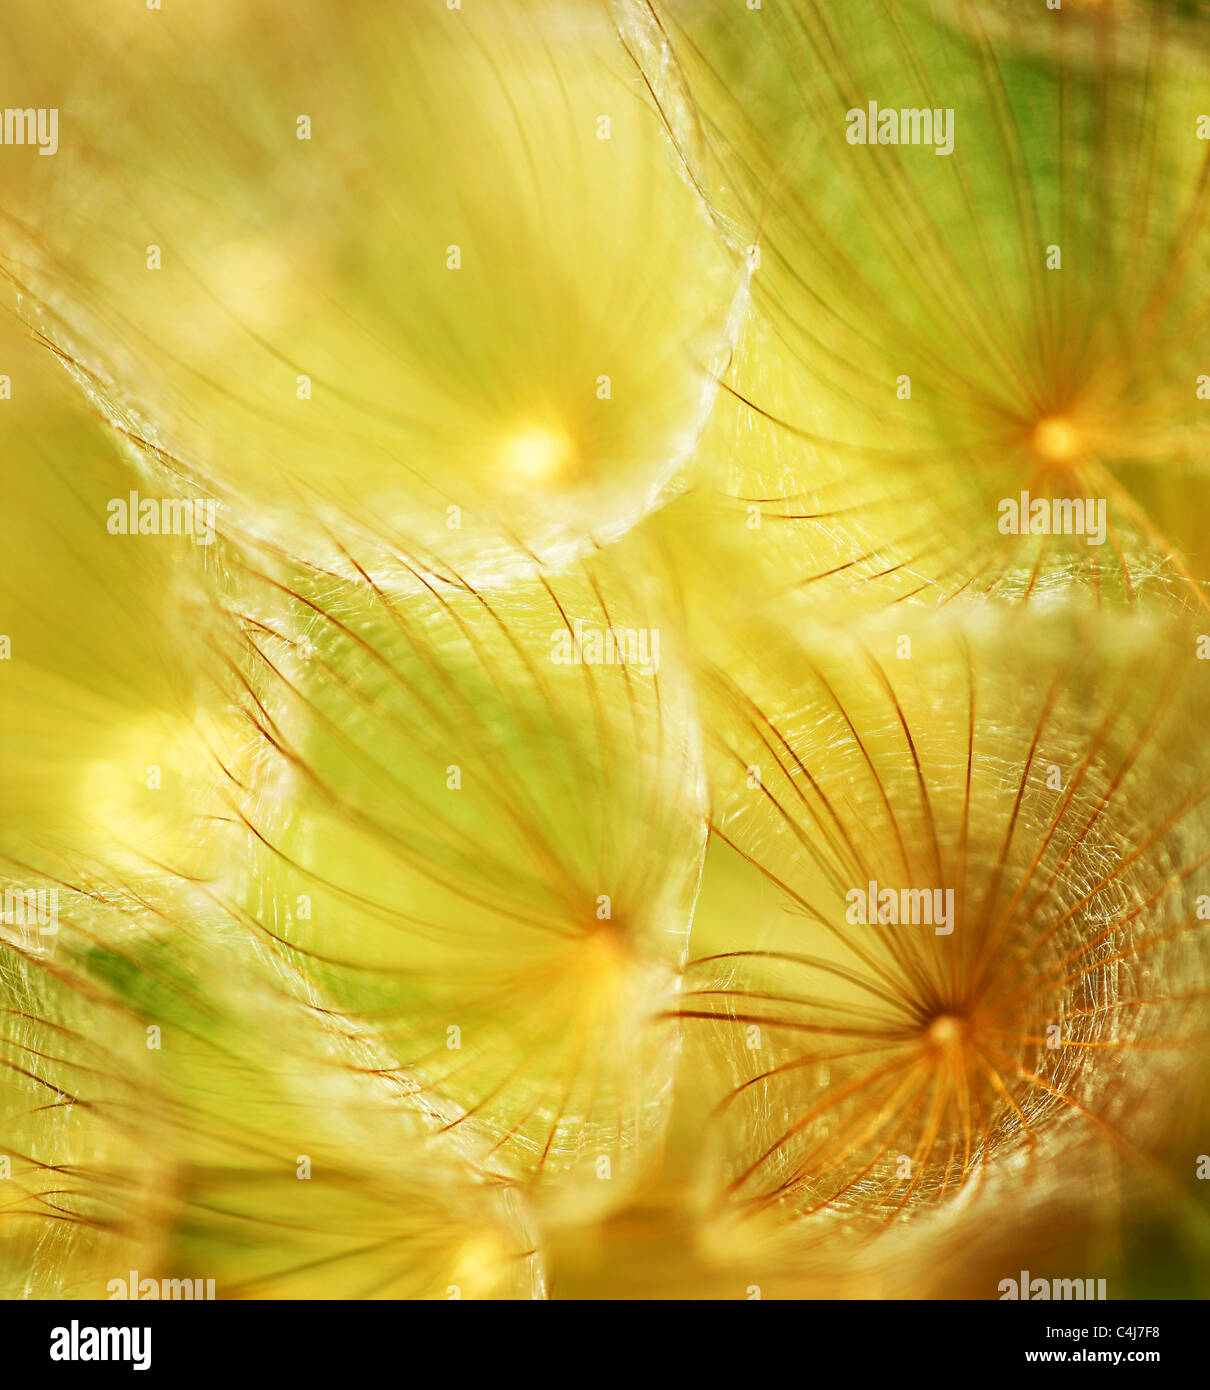 Soft dandelion flower, extreme closeup, abstract spring nature background - Stock Image